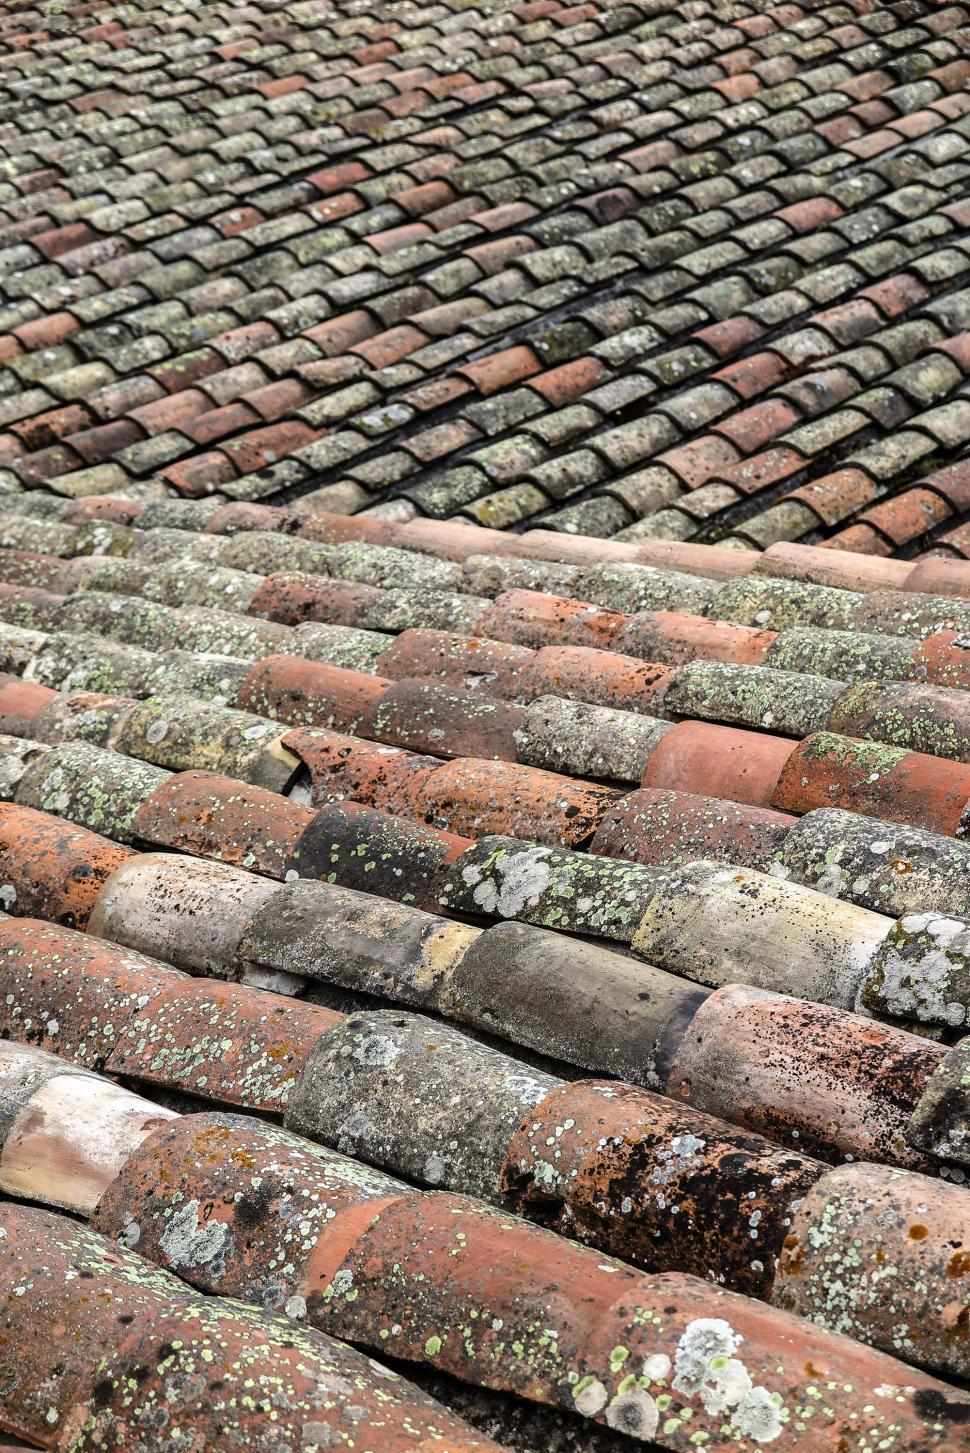 Download Free Stock HD Photo of Tile roof tiles Online